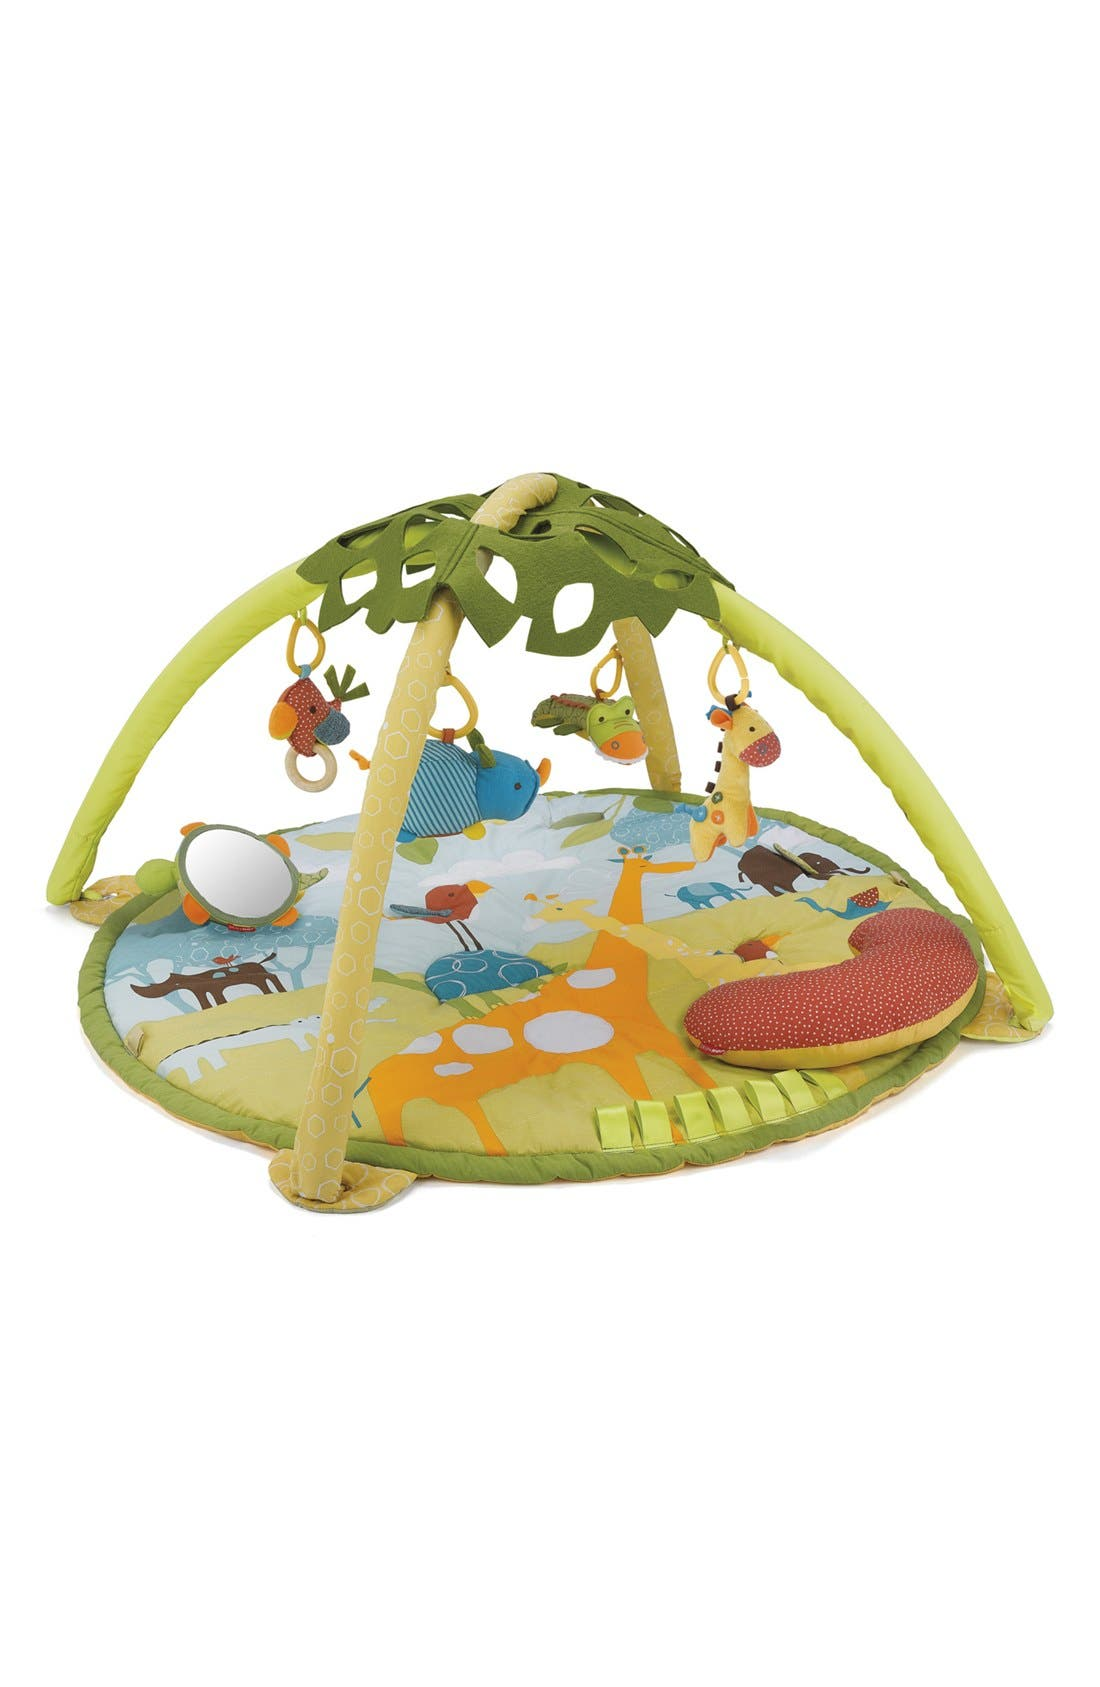 SKIP HOP 'Giraffe Safari' Activity Gym